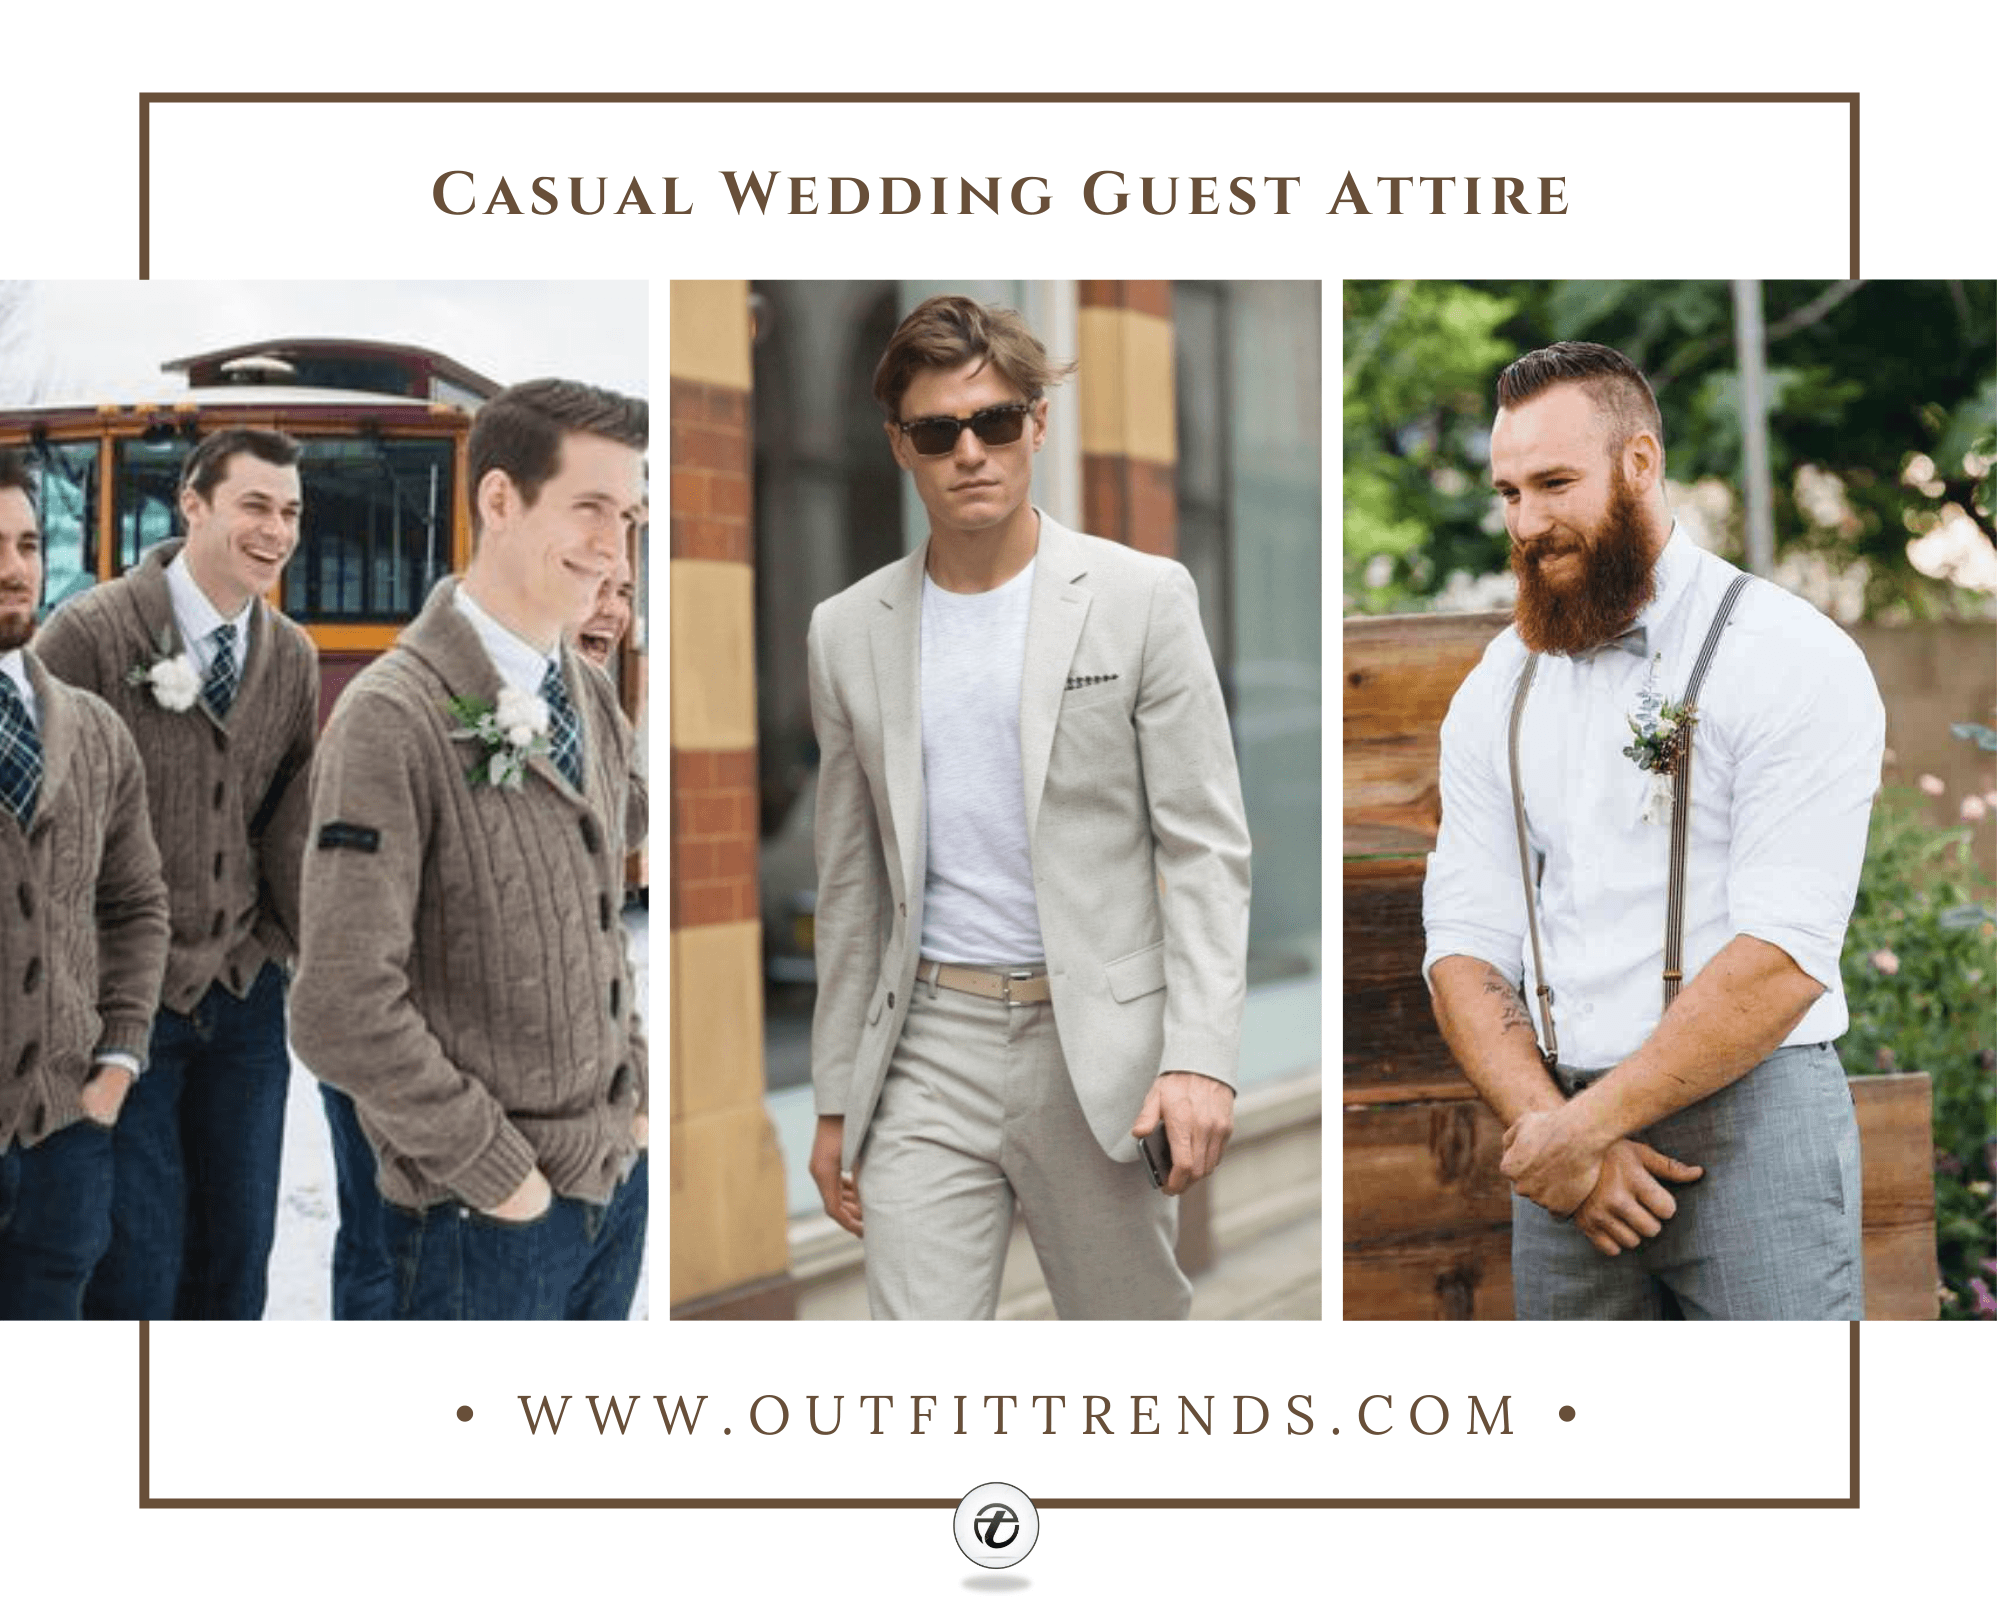 Casual Wedding Guest Attire For Men | 25 Outfits & Tips